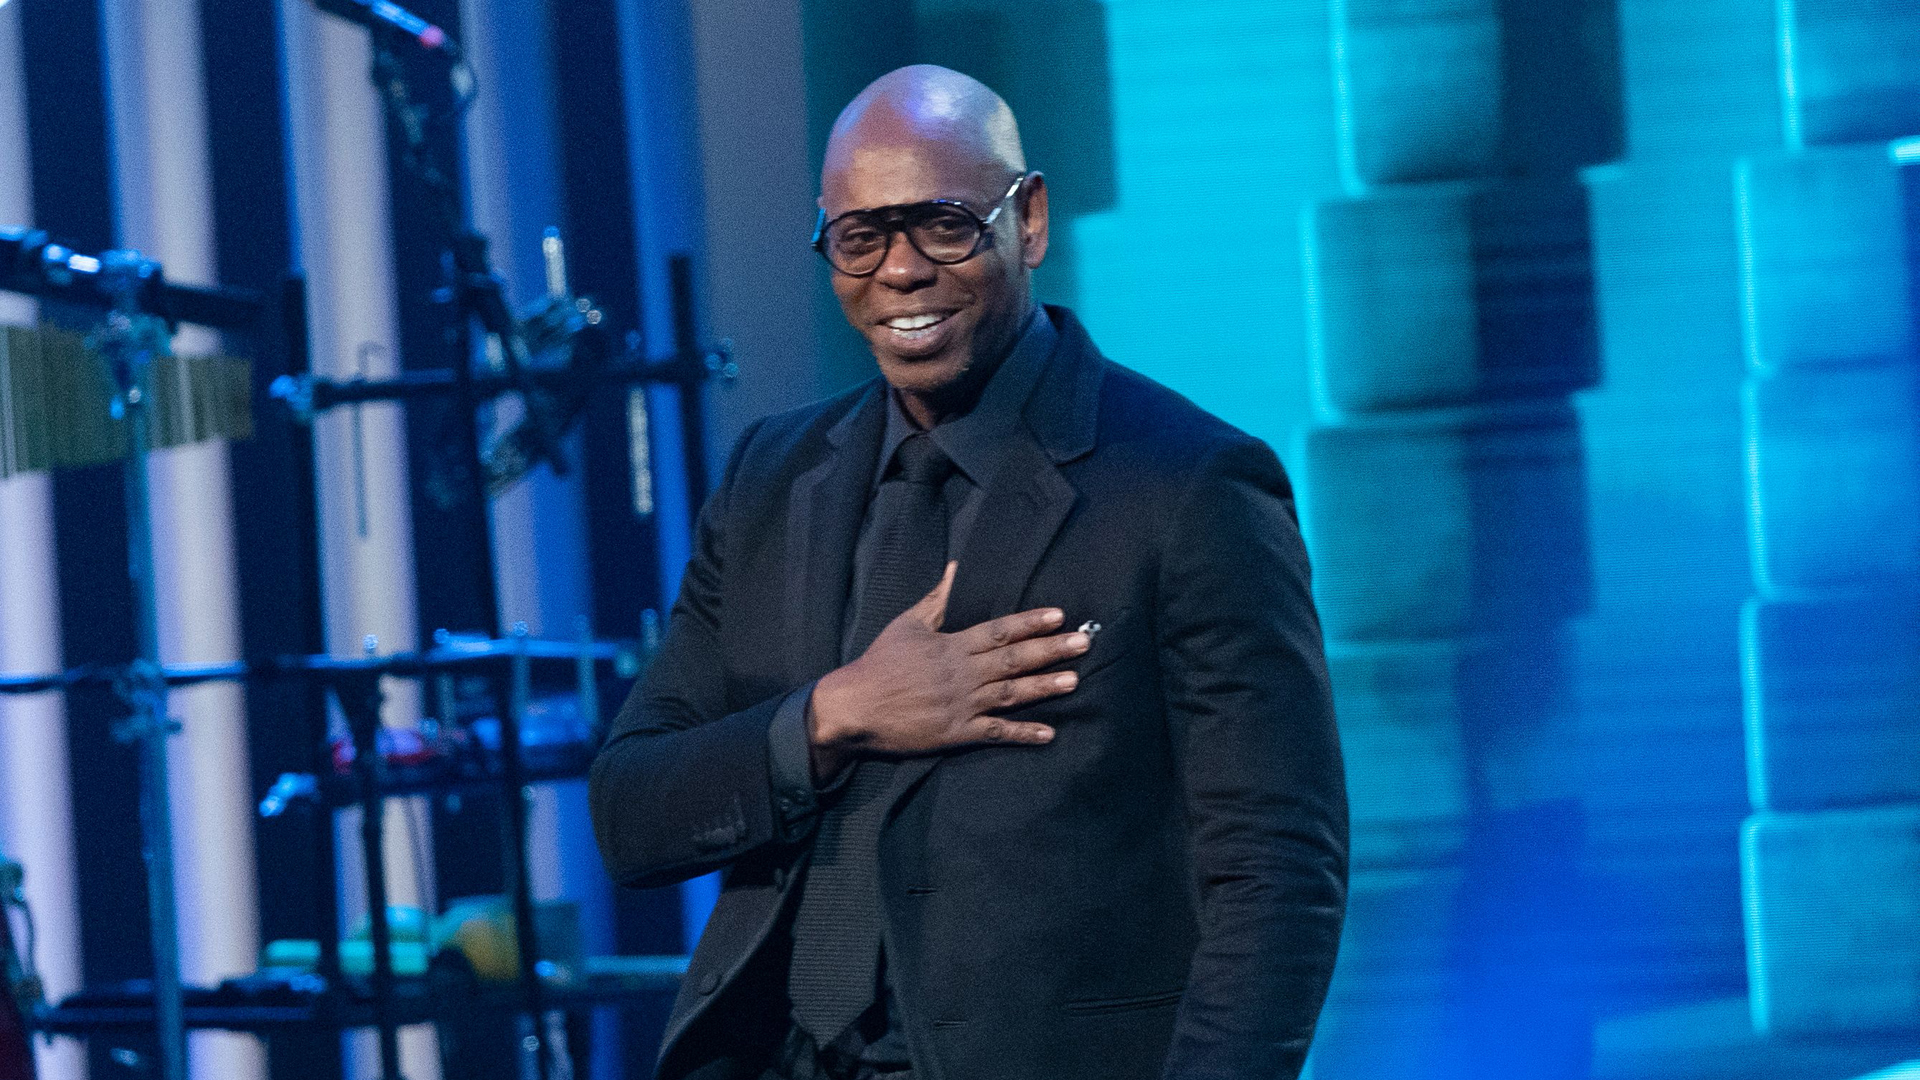 Comedian Dave Chappelle arrives on stage at the Kennedy Center for the Mark Twain Award for American Humor on October 27, 2019 in Washington, DC. - This years' award recipient is comedian Dave Chappelle. (Photo by Alex Edelman / AFP) (Photo by ALEX EDELMAN/AFP via Getty Images)